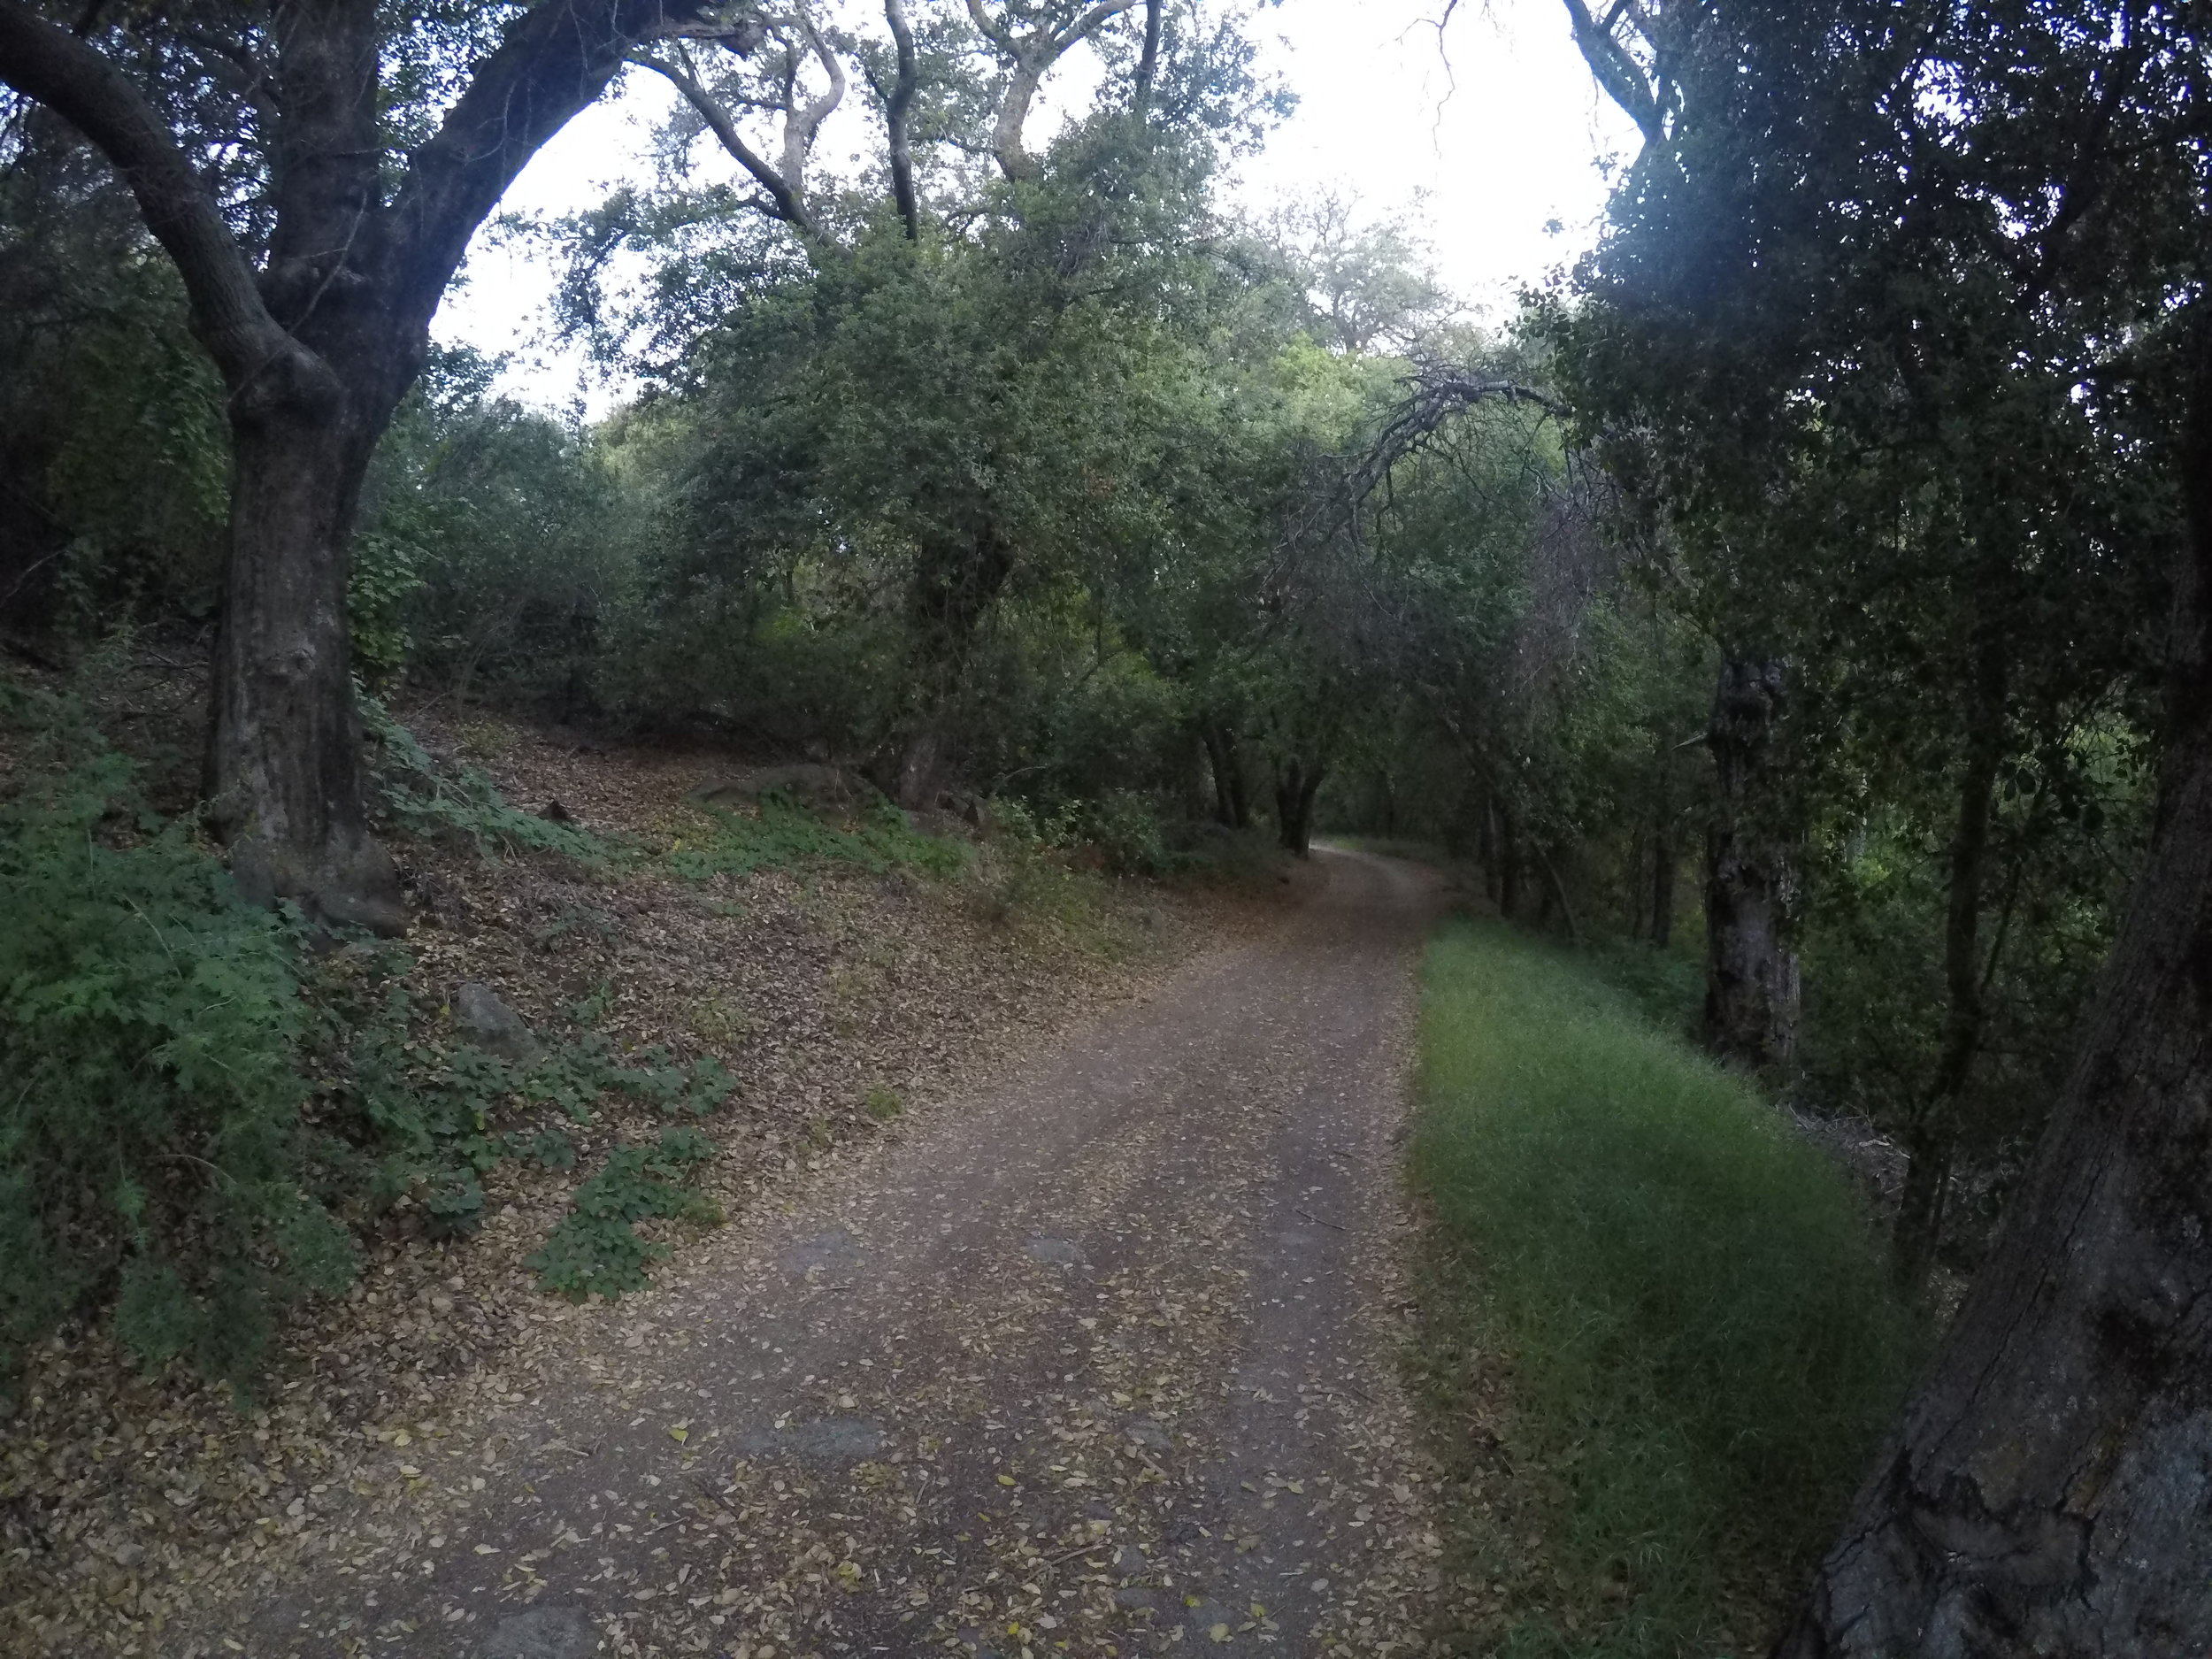 The early portion of the Corte Madera hike passes under some great old growth oaks.